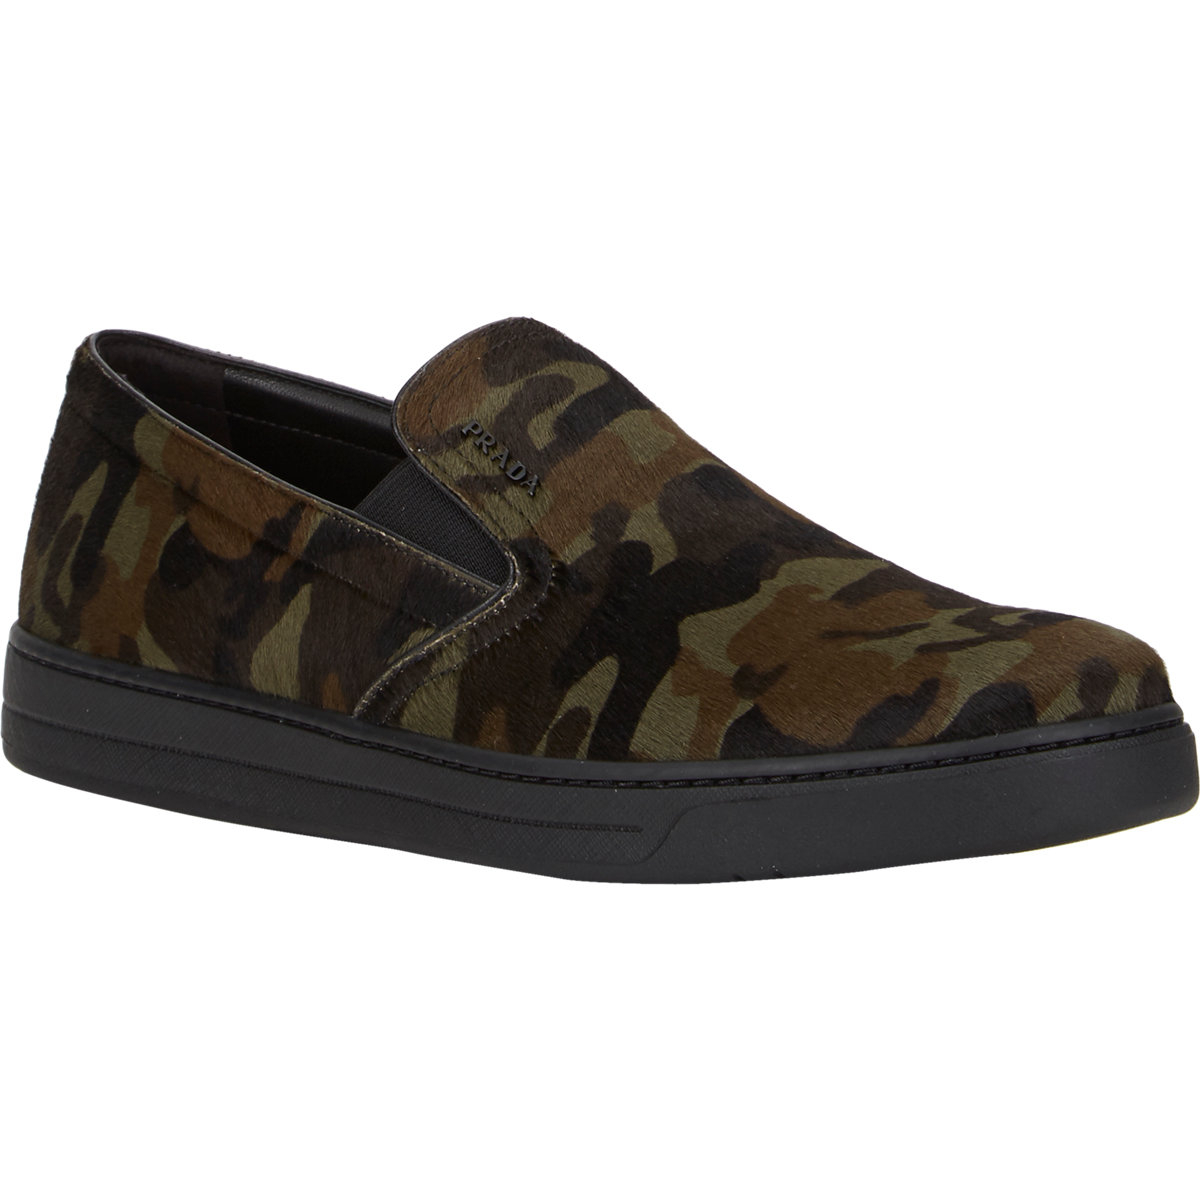 deals sale online free shipping shop offer Prada Sport Camo Slip-On Sneakers pictures cheap online visit sale online outlet get authentic qsZ9OBSnTN